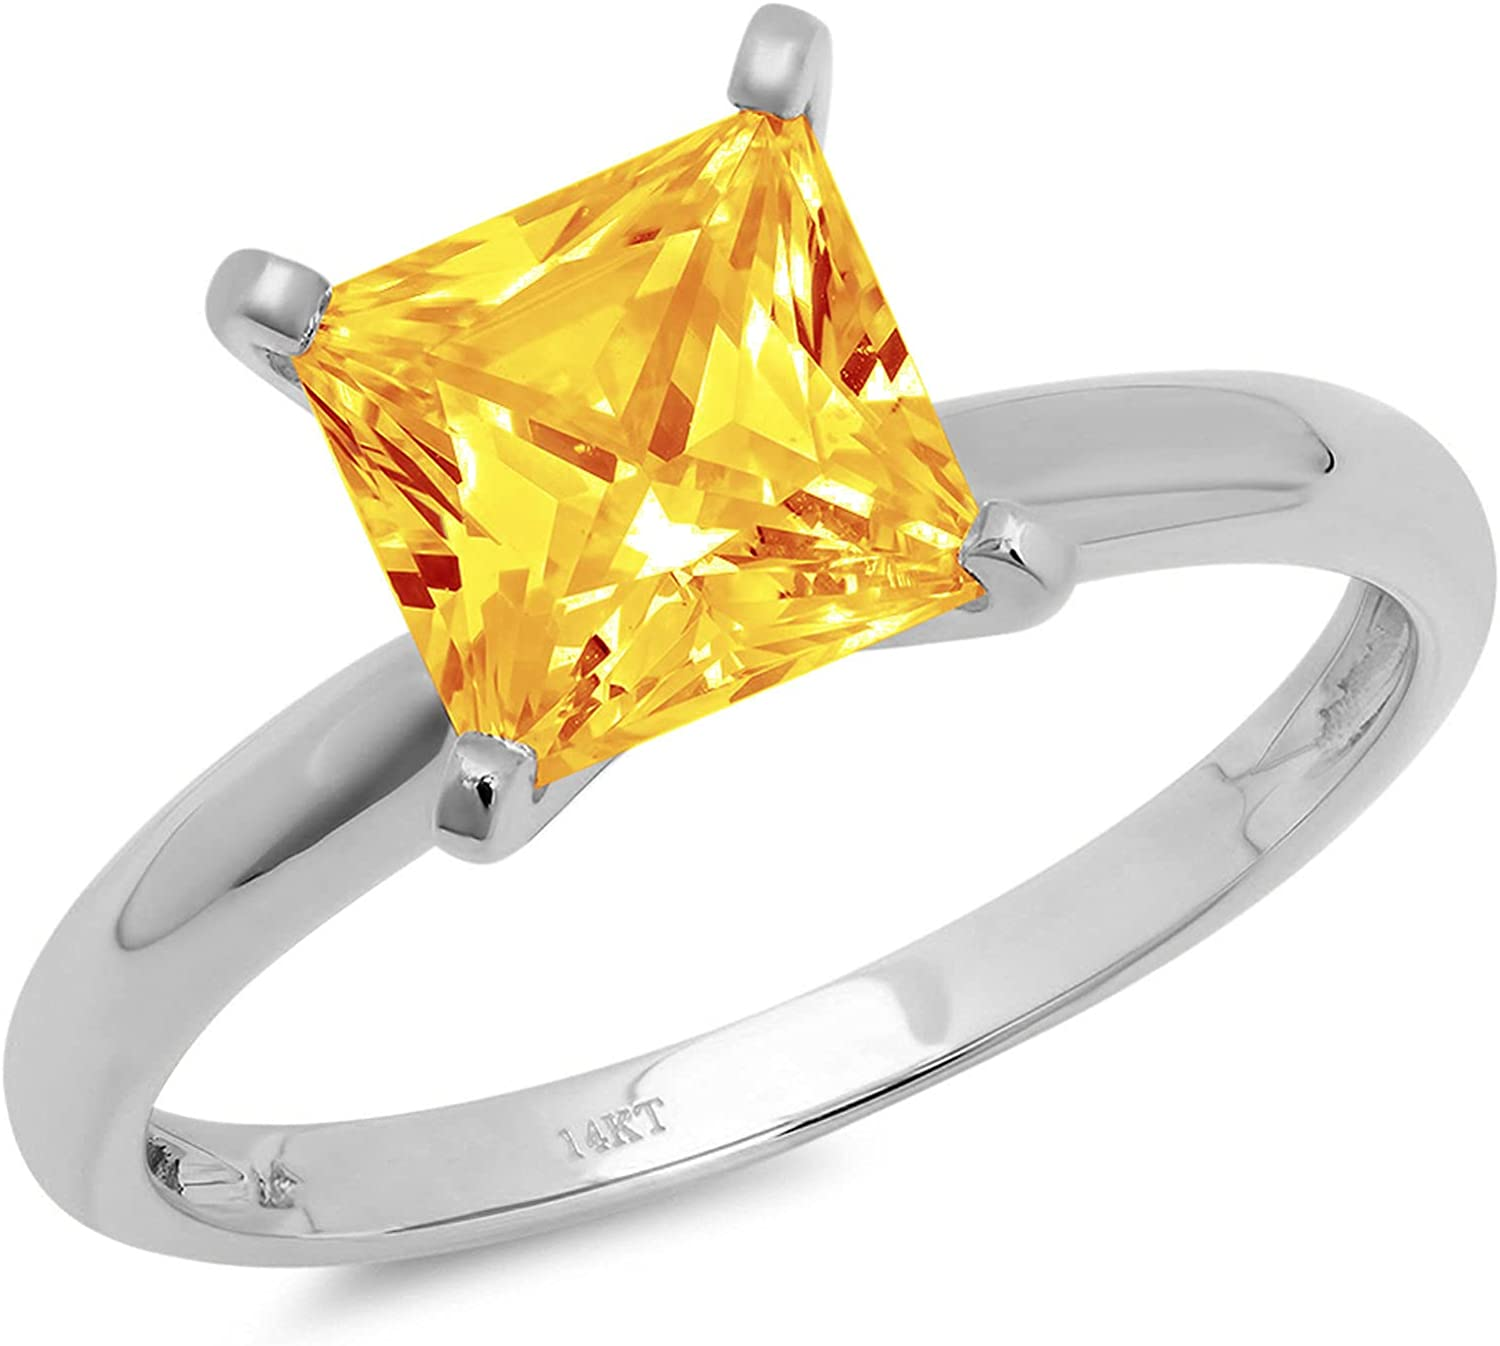 1.4ct Brilliant Princess Cut Solitaire Natural Yellow Citrine Ideal VVS1 4-Prong Engagement Wedding Bridal Promise Anniversary Ring Solid 14k White Gold for Women